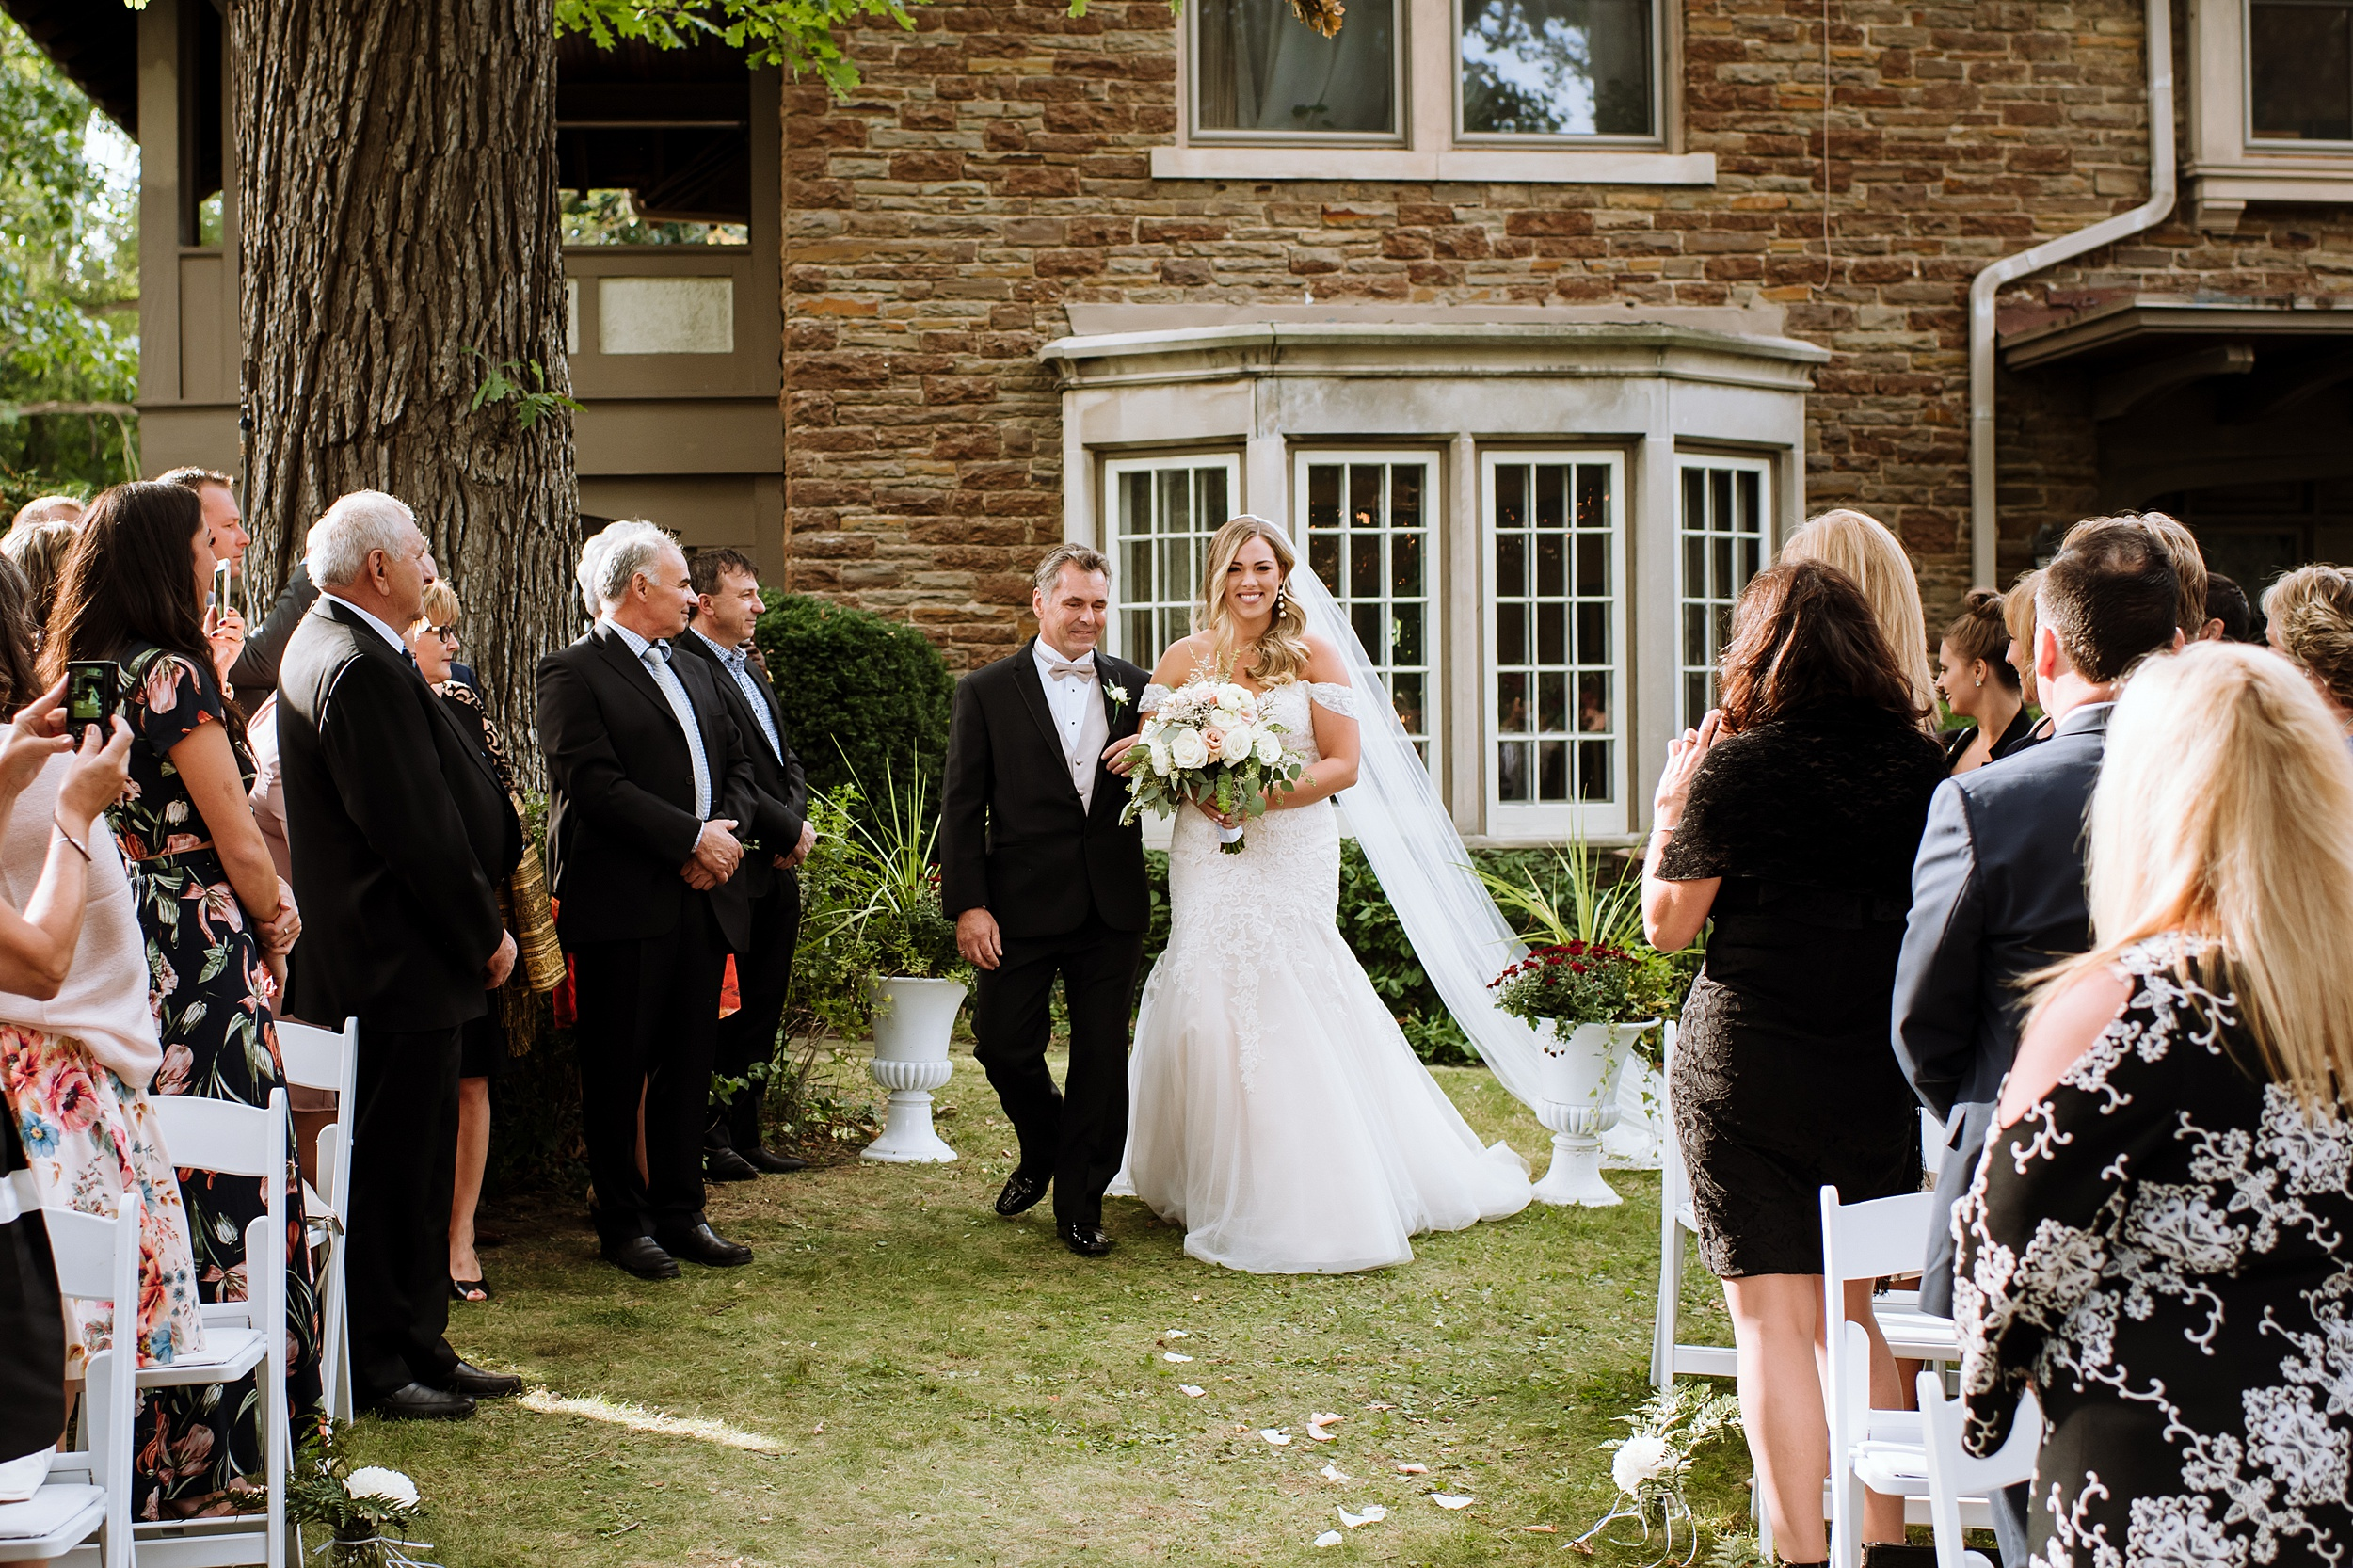 Rustic_Backyard_Wedding_Toronto_Photographer094.jpg